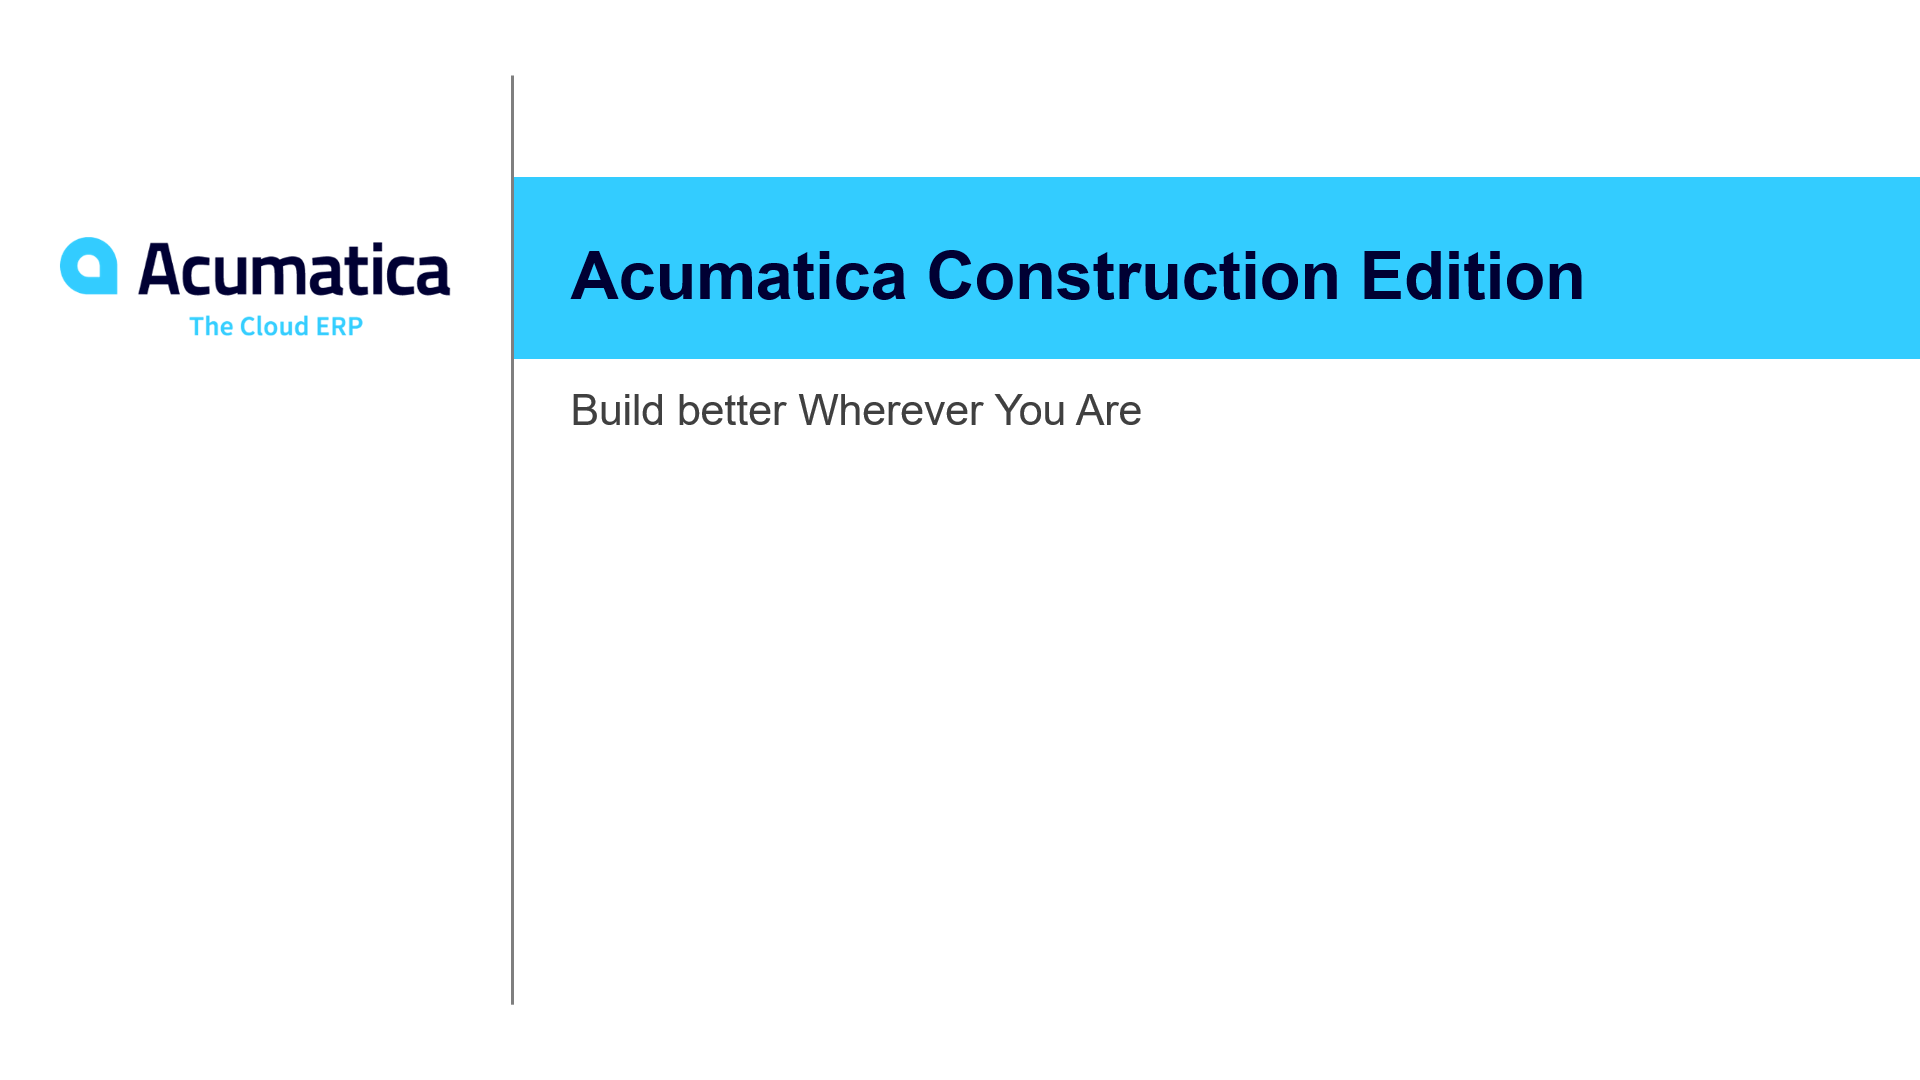 Acumatica Construction Edition Overview